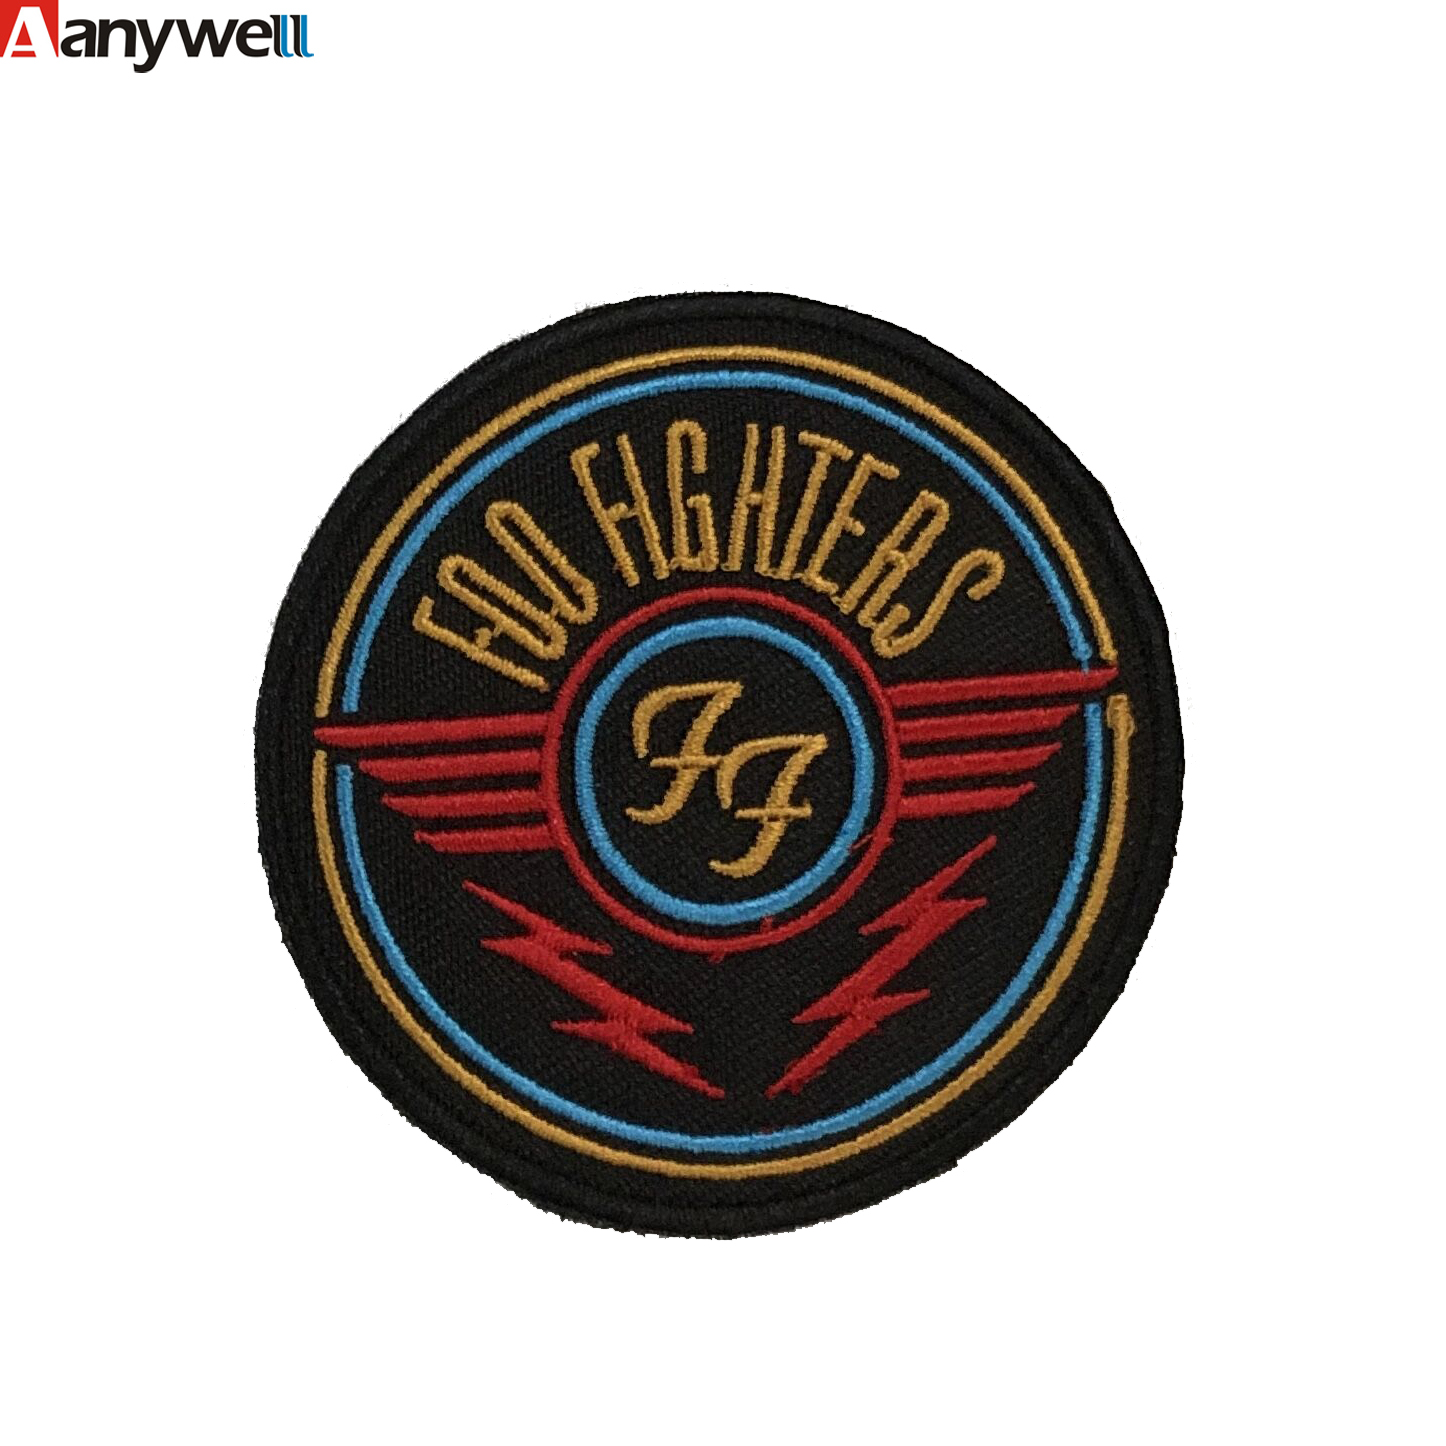 Foo fighters wings felt pattern logo pacthes for military uniform image